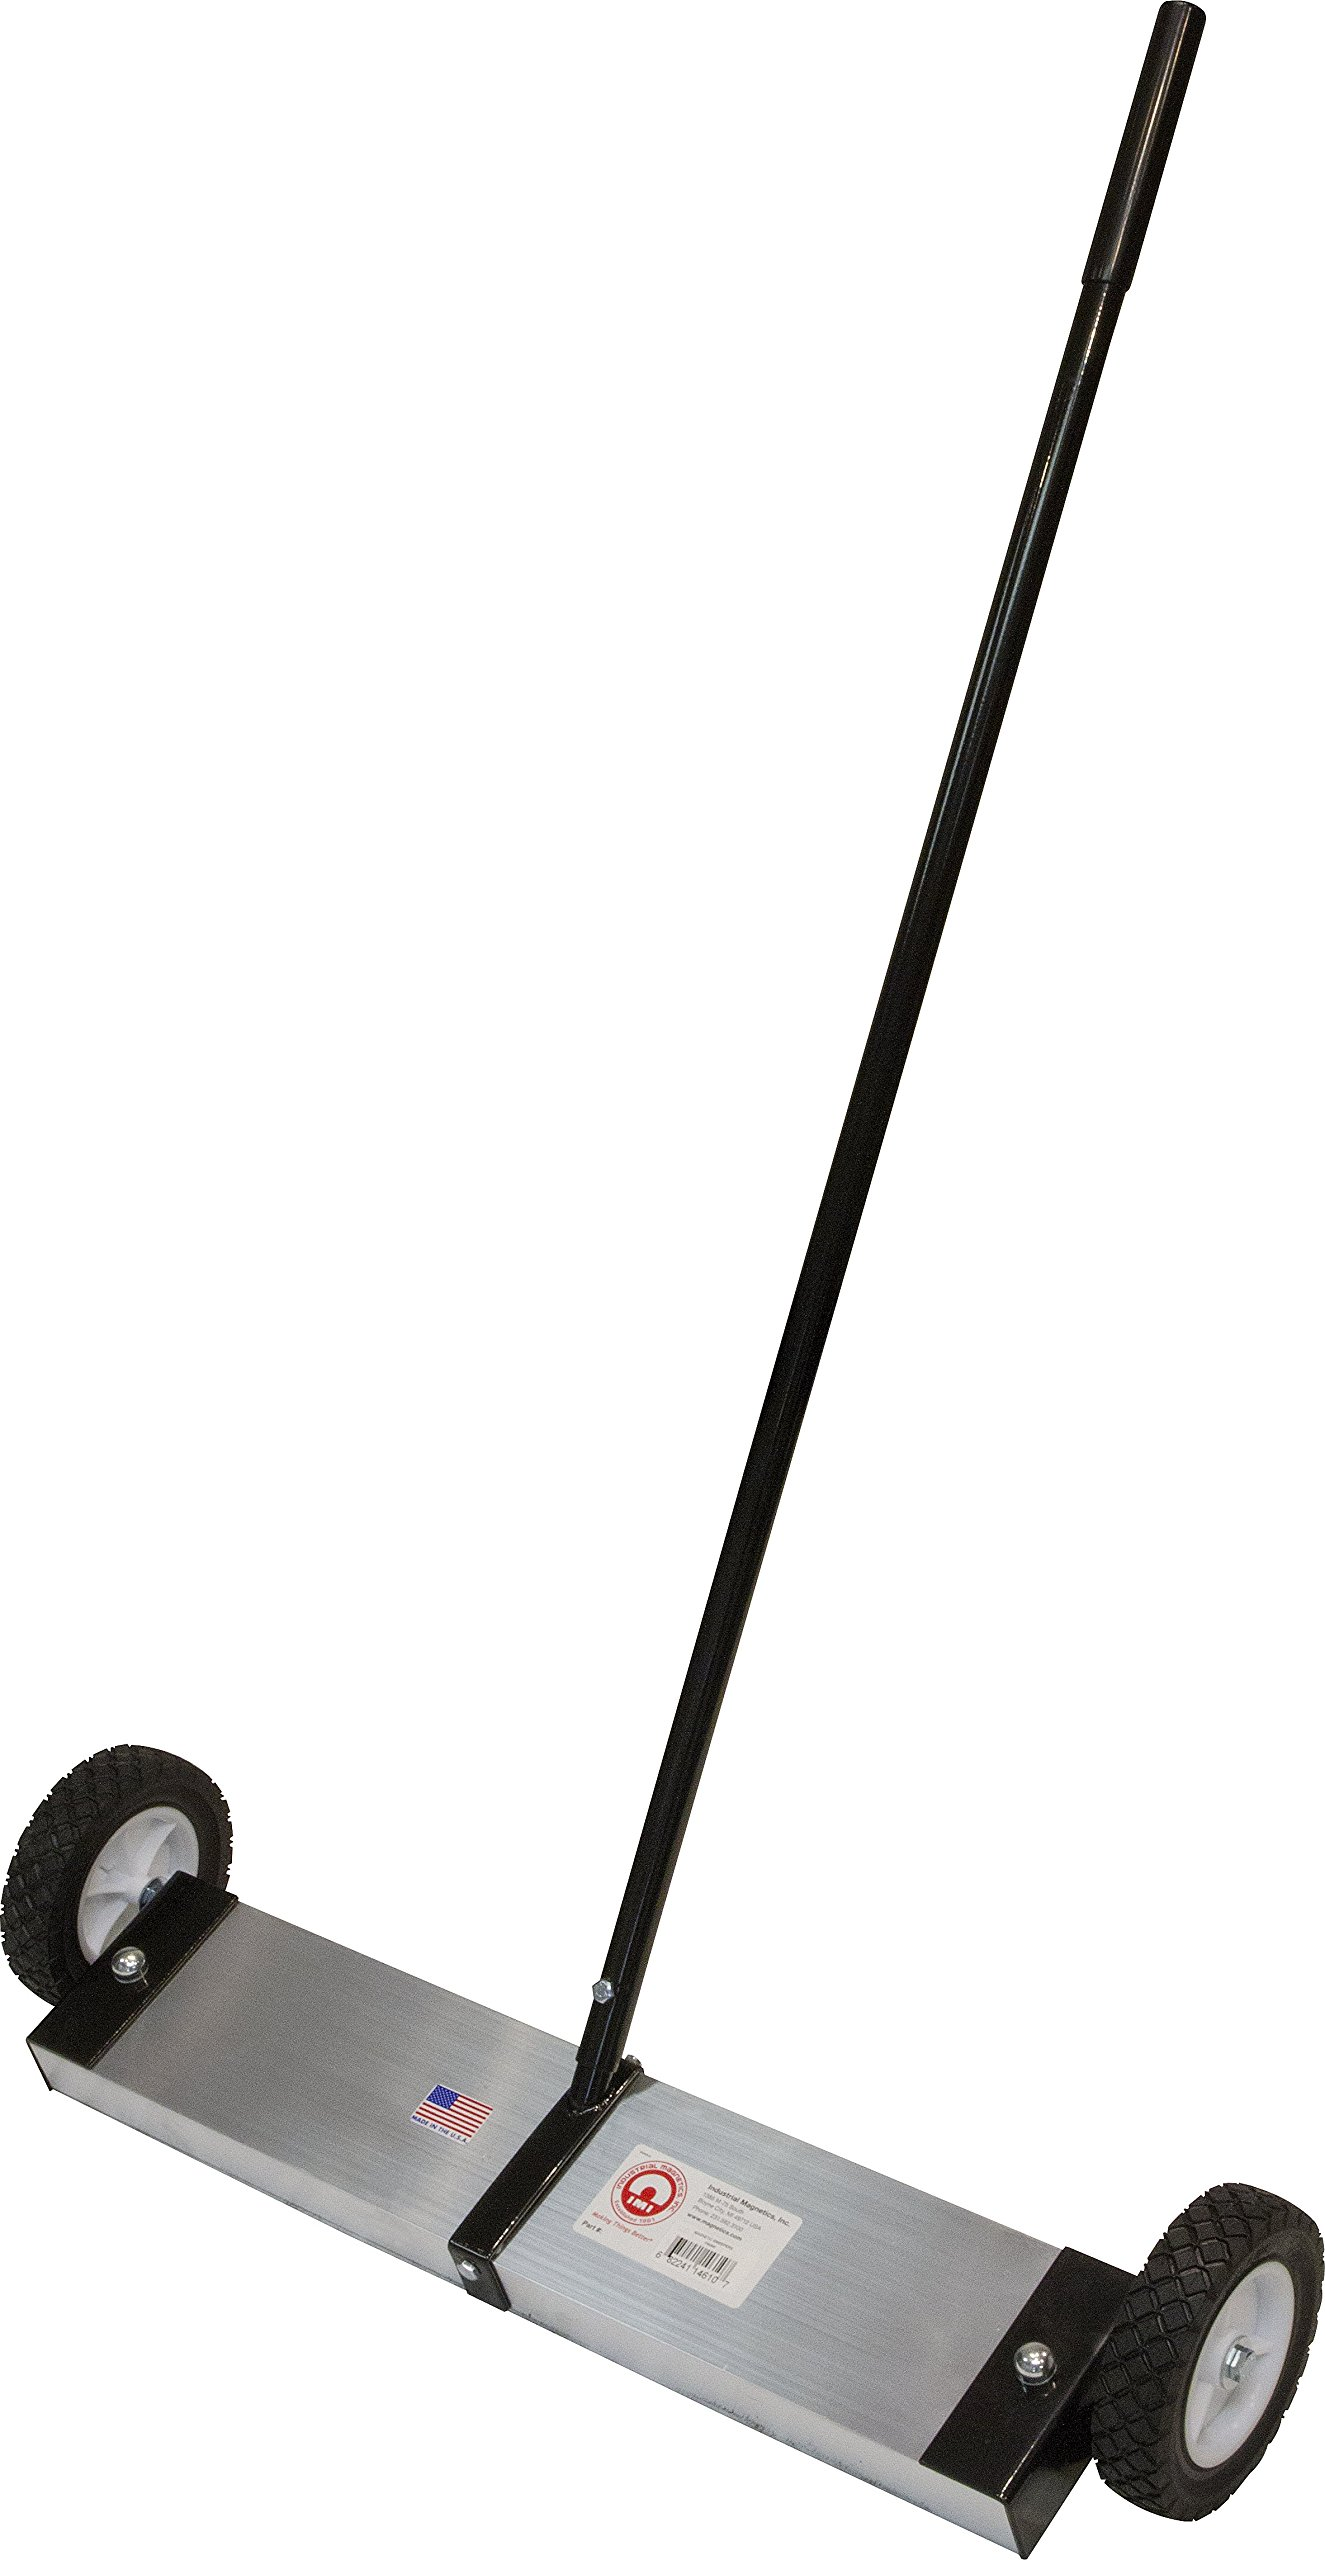 MAG-MATE FS2400 Magnetic Floor Sweeper with 6'' Wheels, 18 x 5 x 42'' by Industrial Magnetics